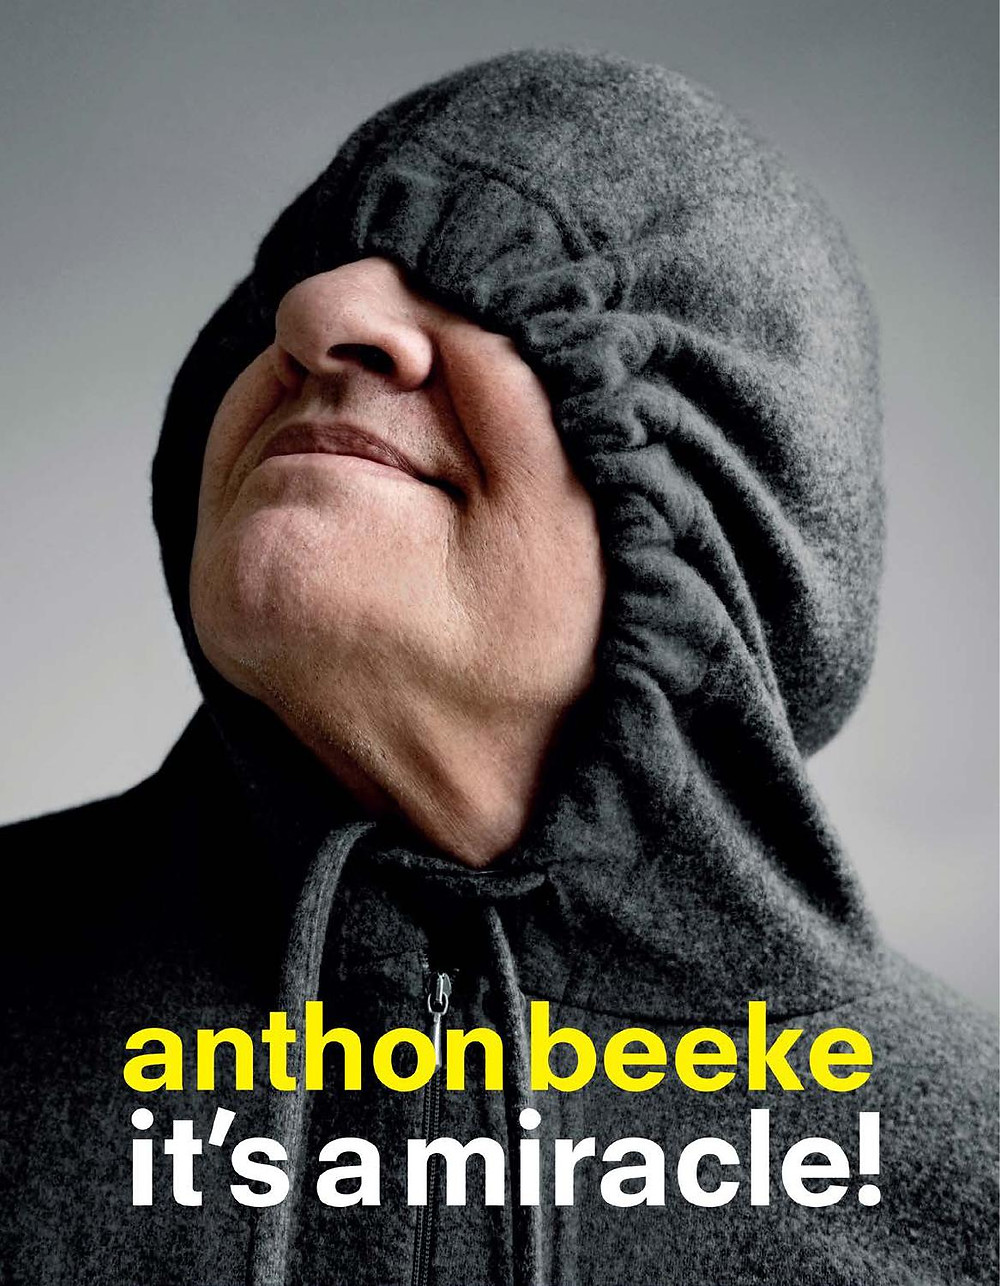 anthon beeke it's amiracle!